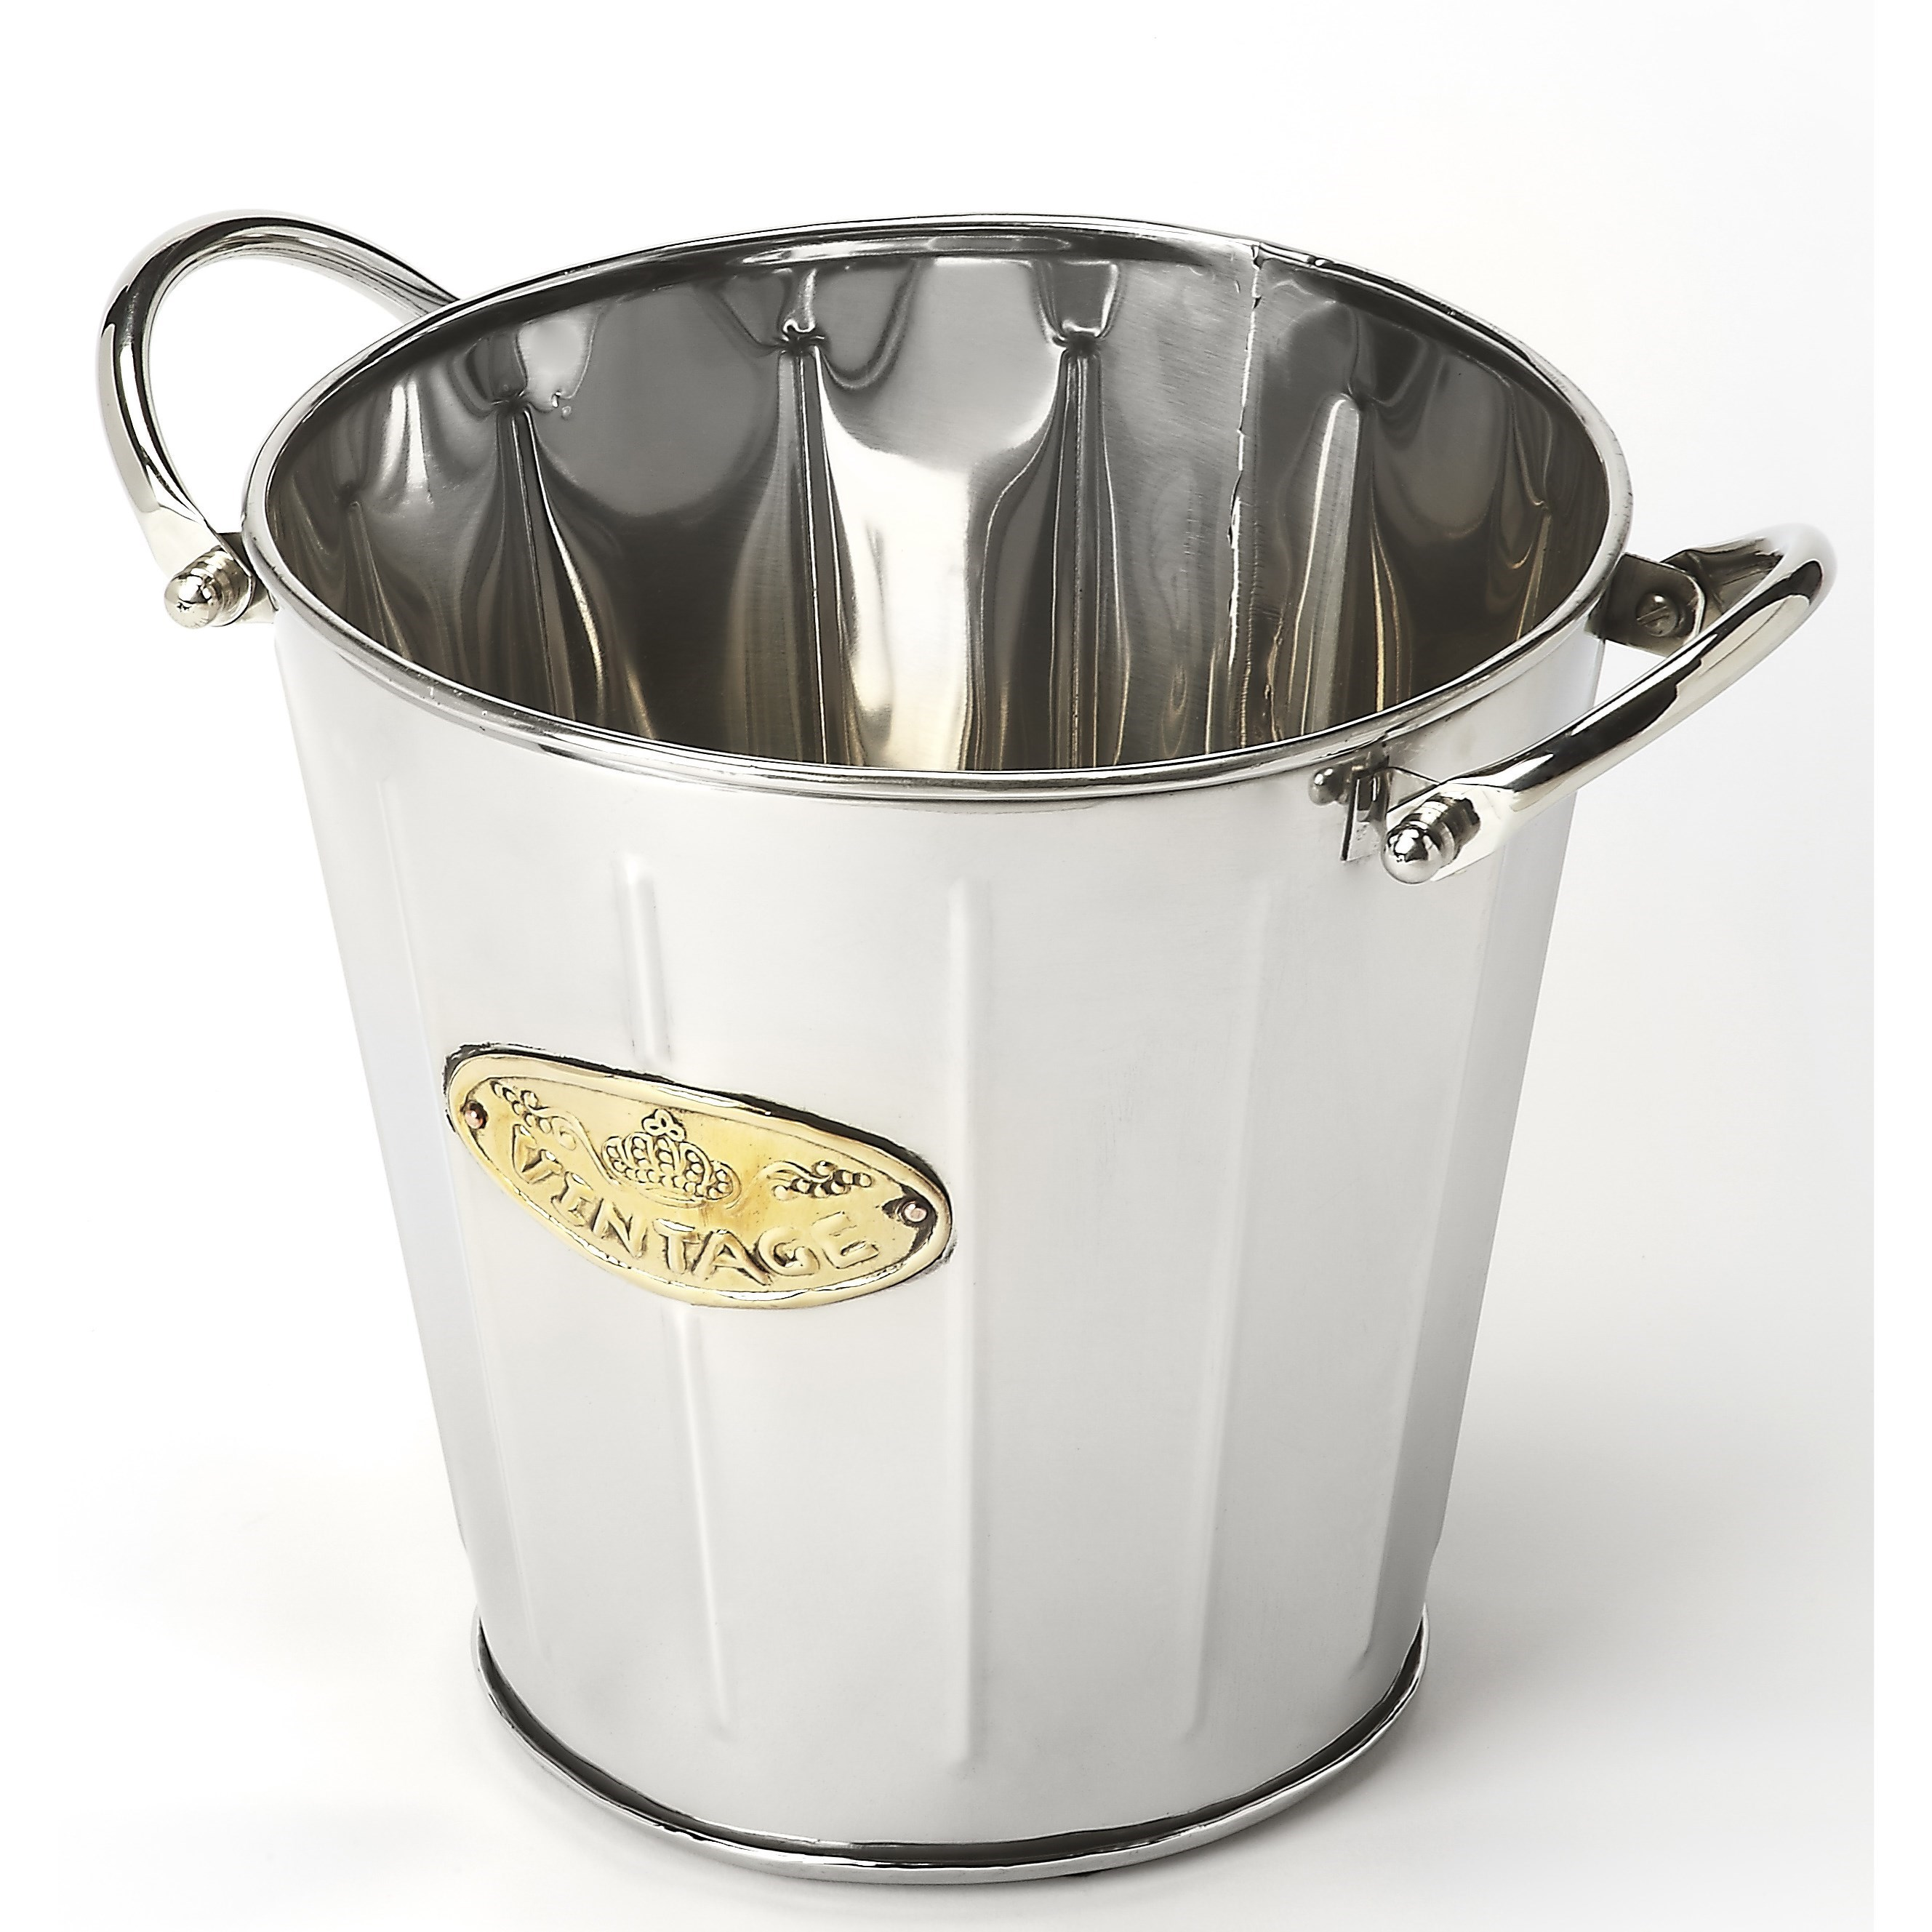 Butler Specialty Company Hors D'oeuvres Wine Bucket - Item Number: 6198016